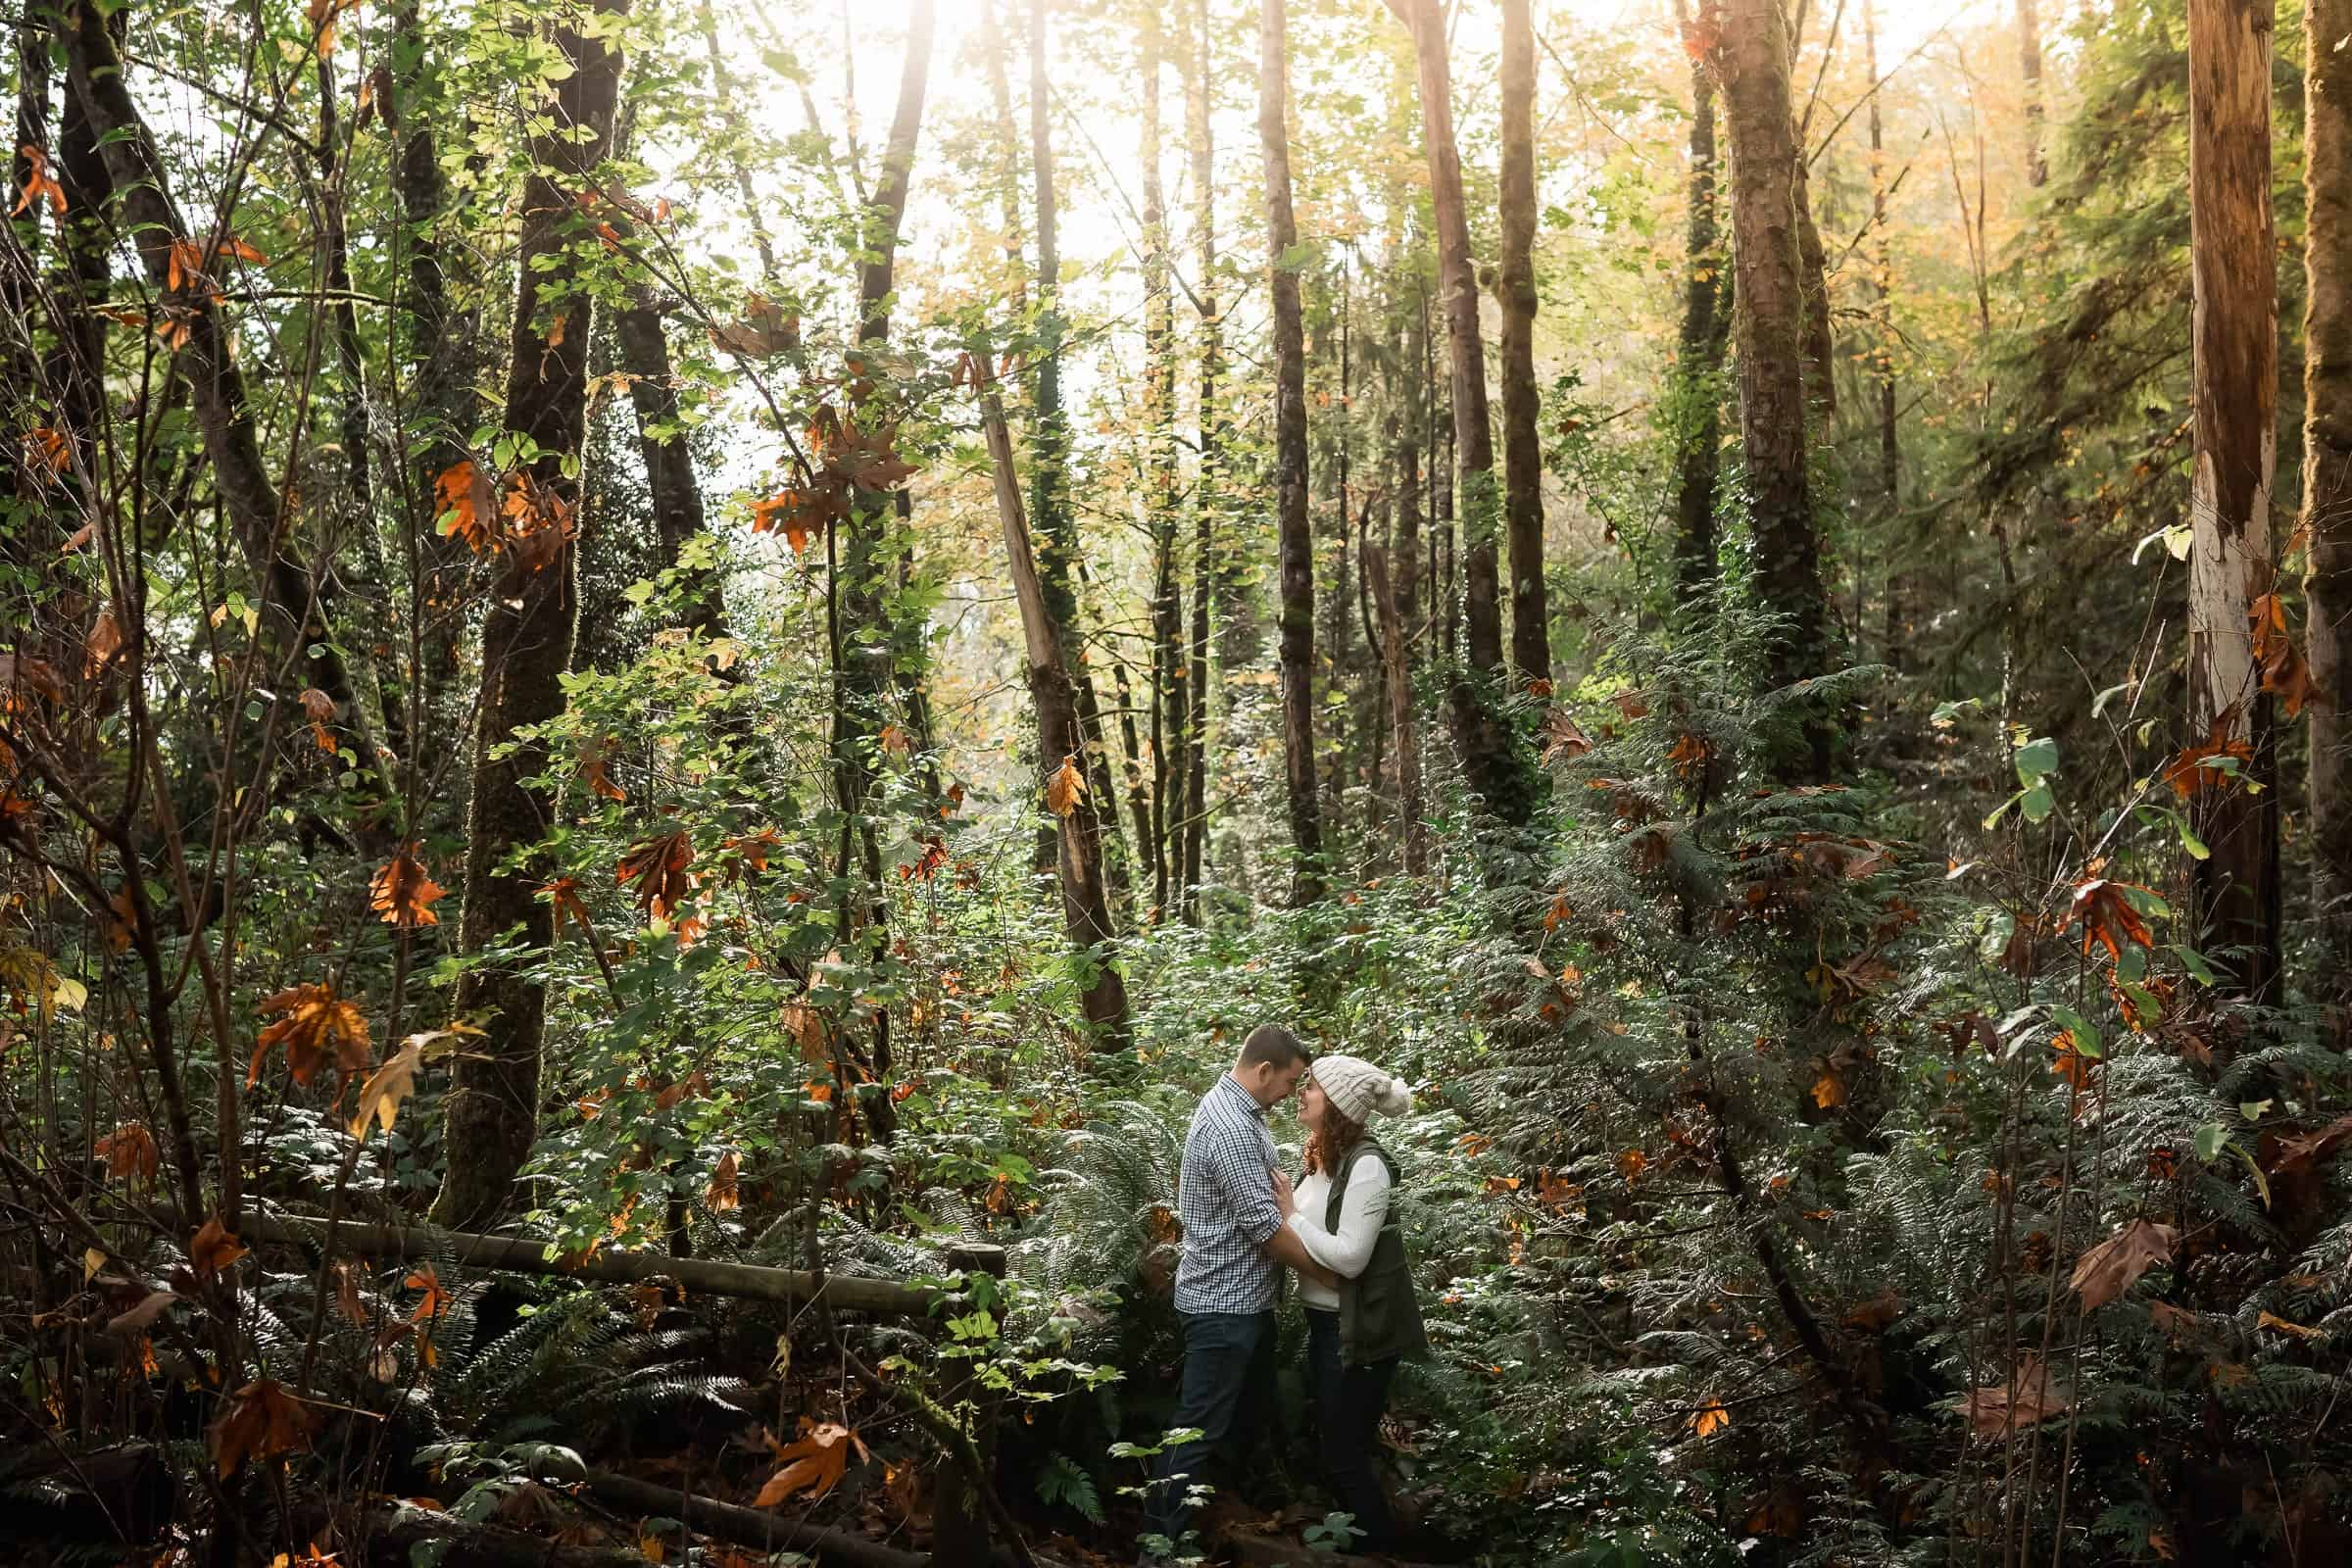 couple laughing together in deep autumn foliage